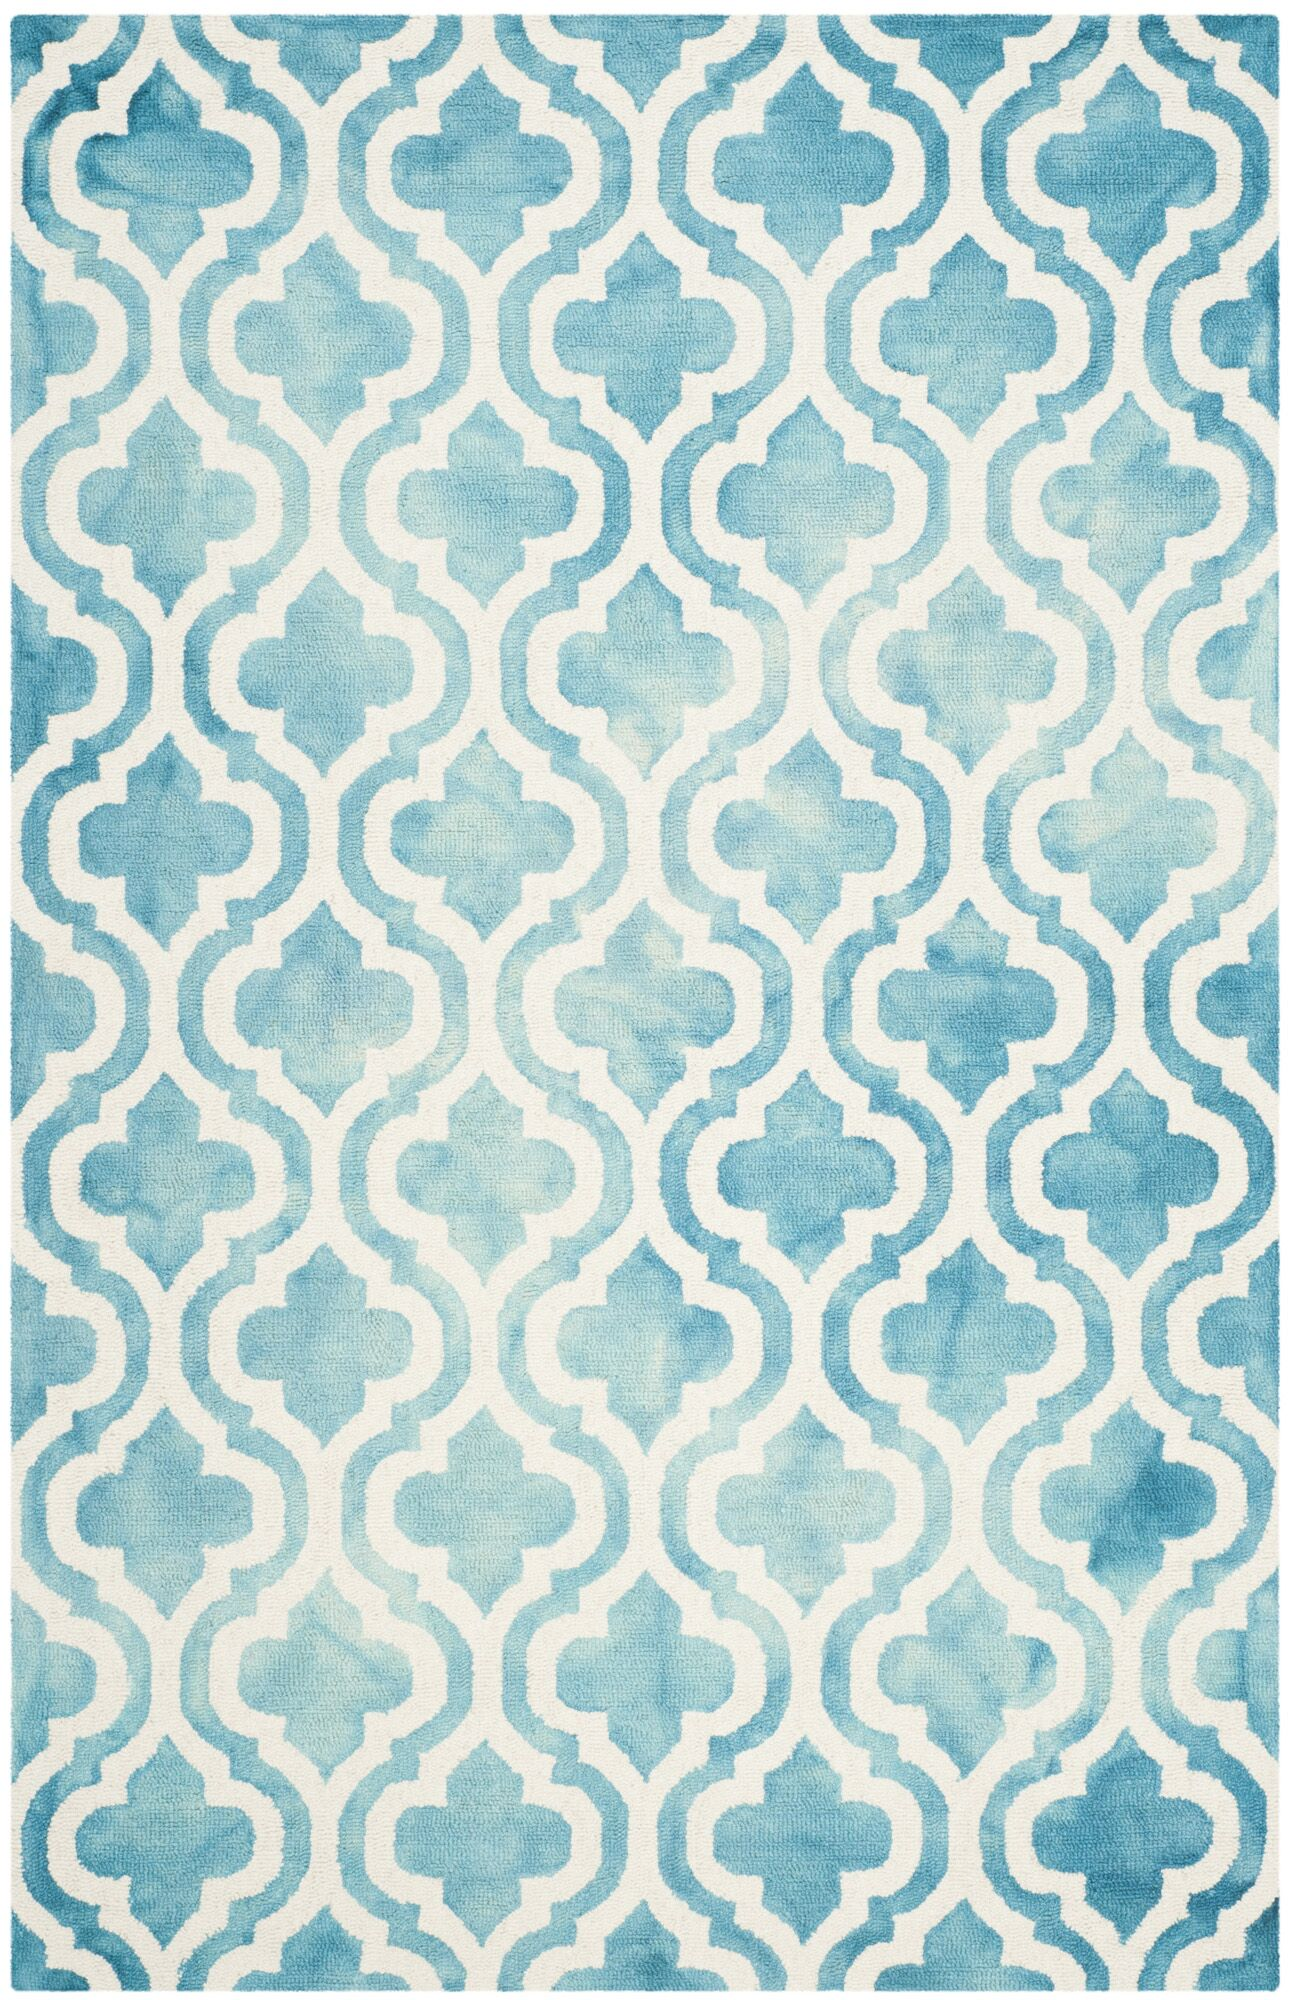 Bettina Hand-Tufted Turquoise/Ivory Area Rug Rug Size: Rectangle 5' x 8'